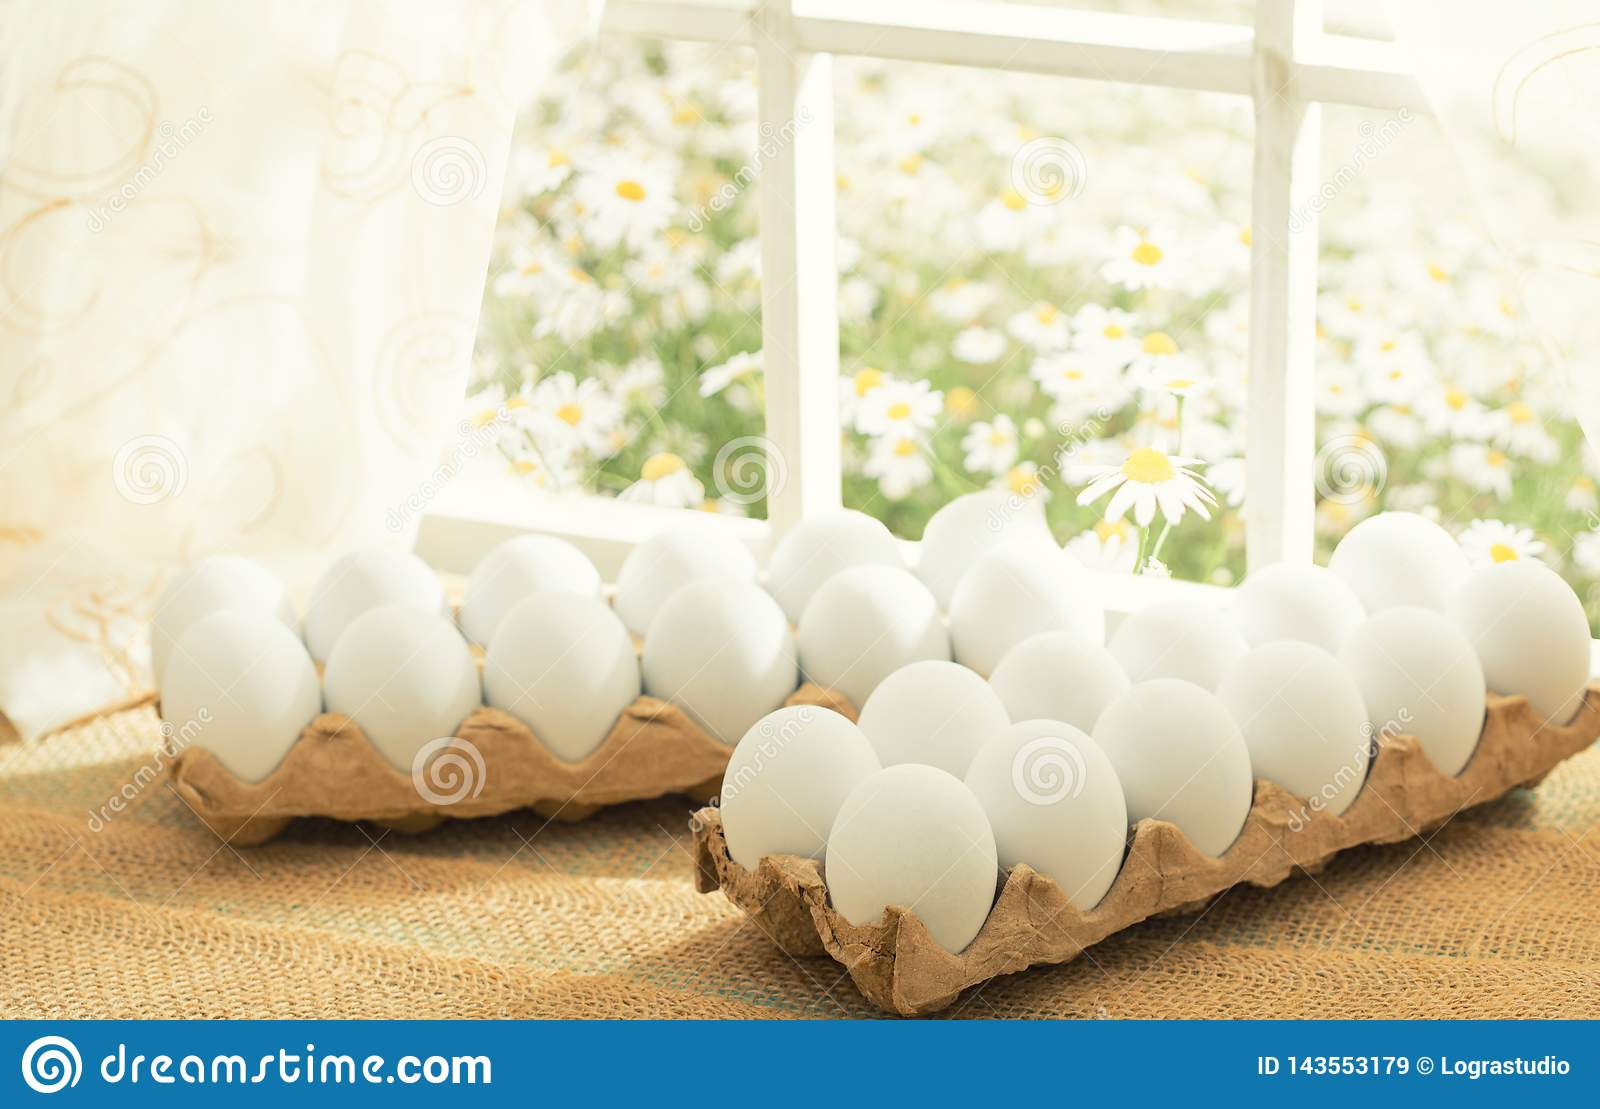 Easter Theme: White Eggs In An Egg Crate On The Window In A